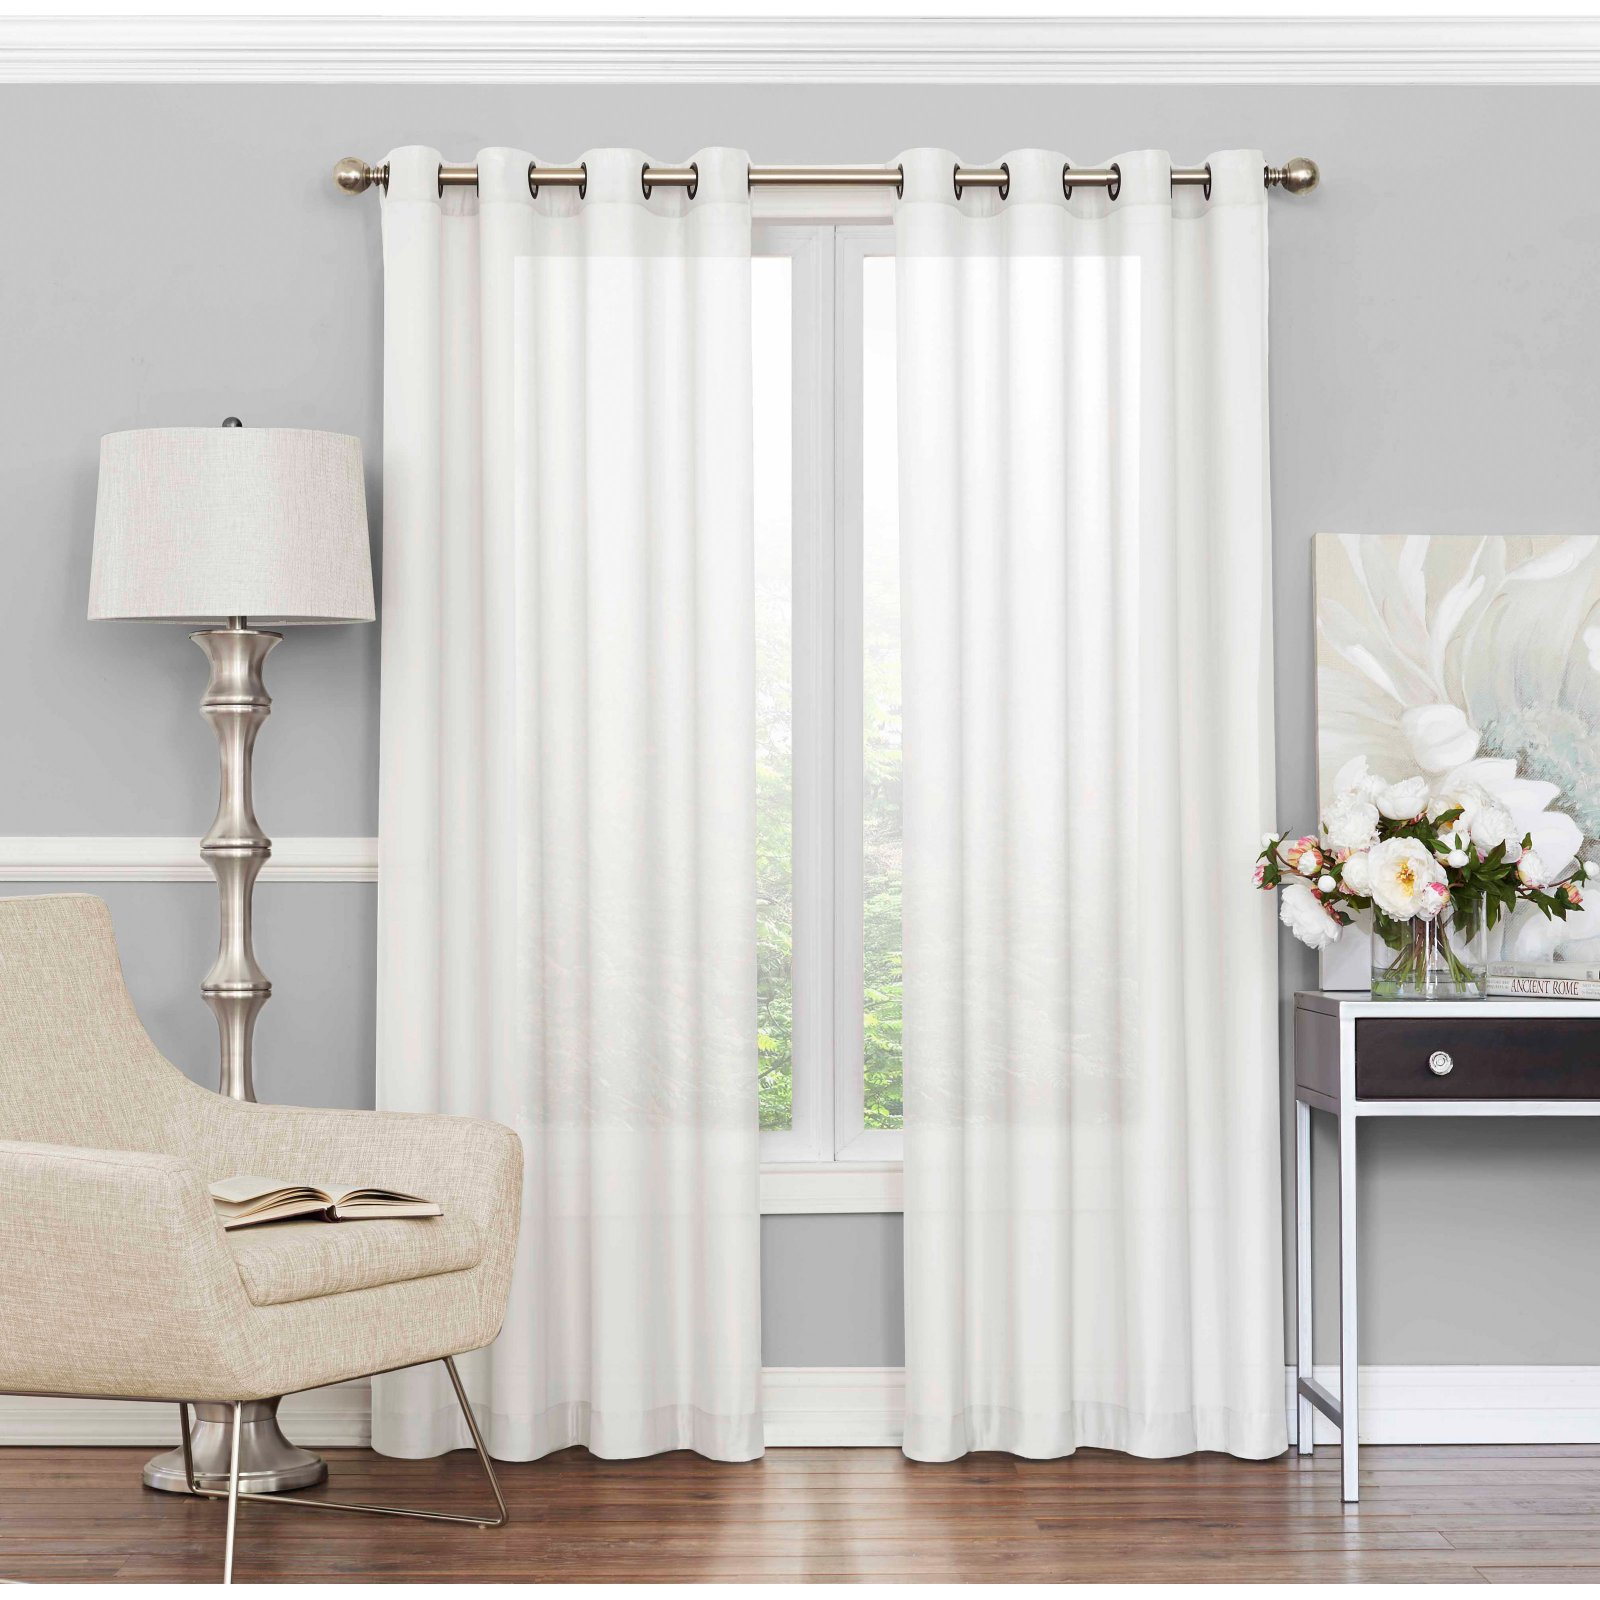 How To Make Curtain Lights Eclipse Liberty Light Filtering Sheer Curtain